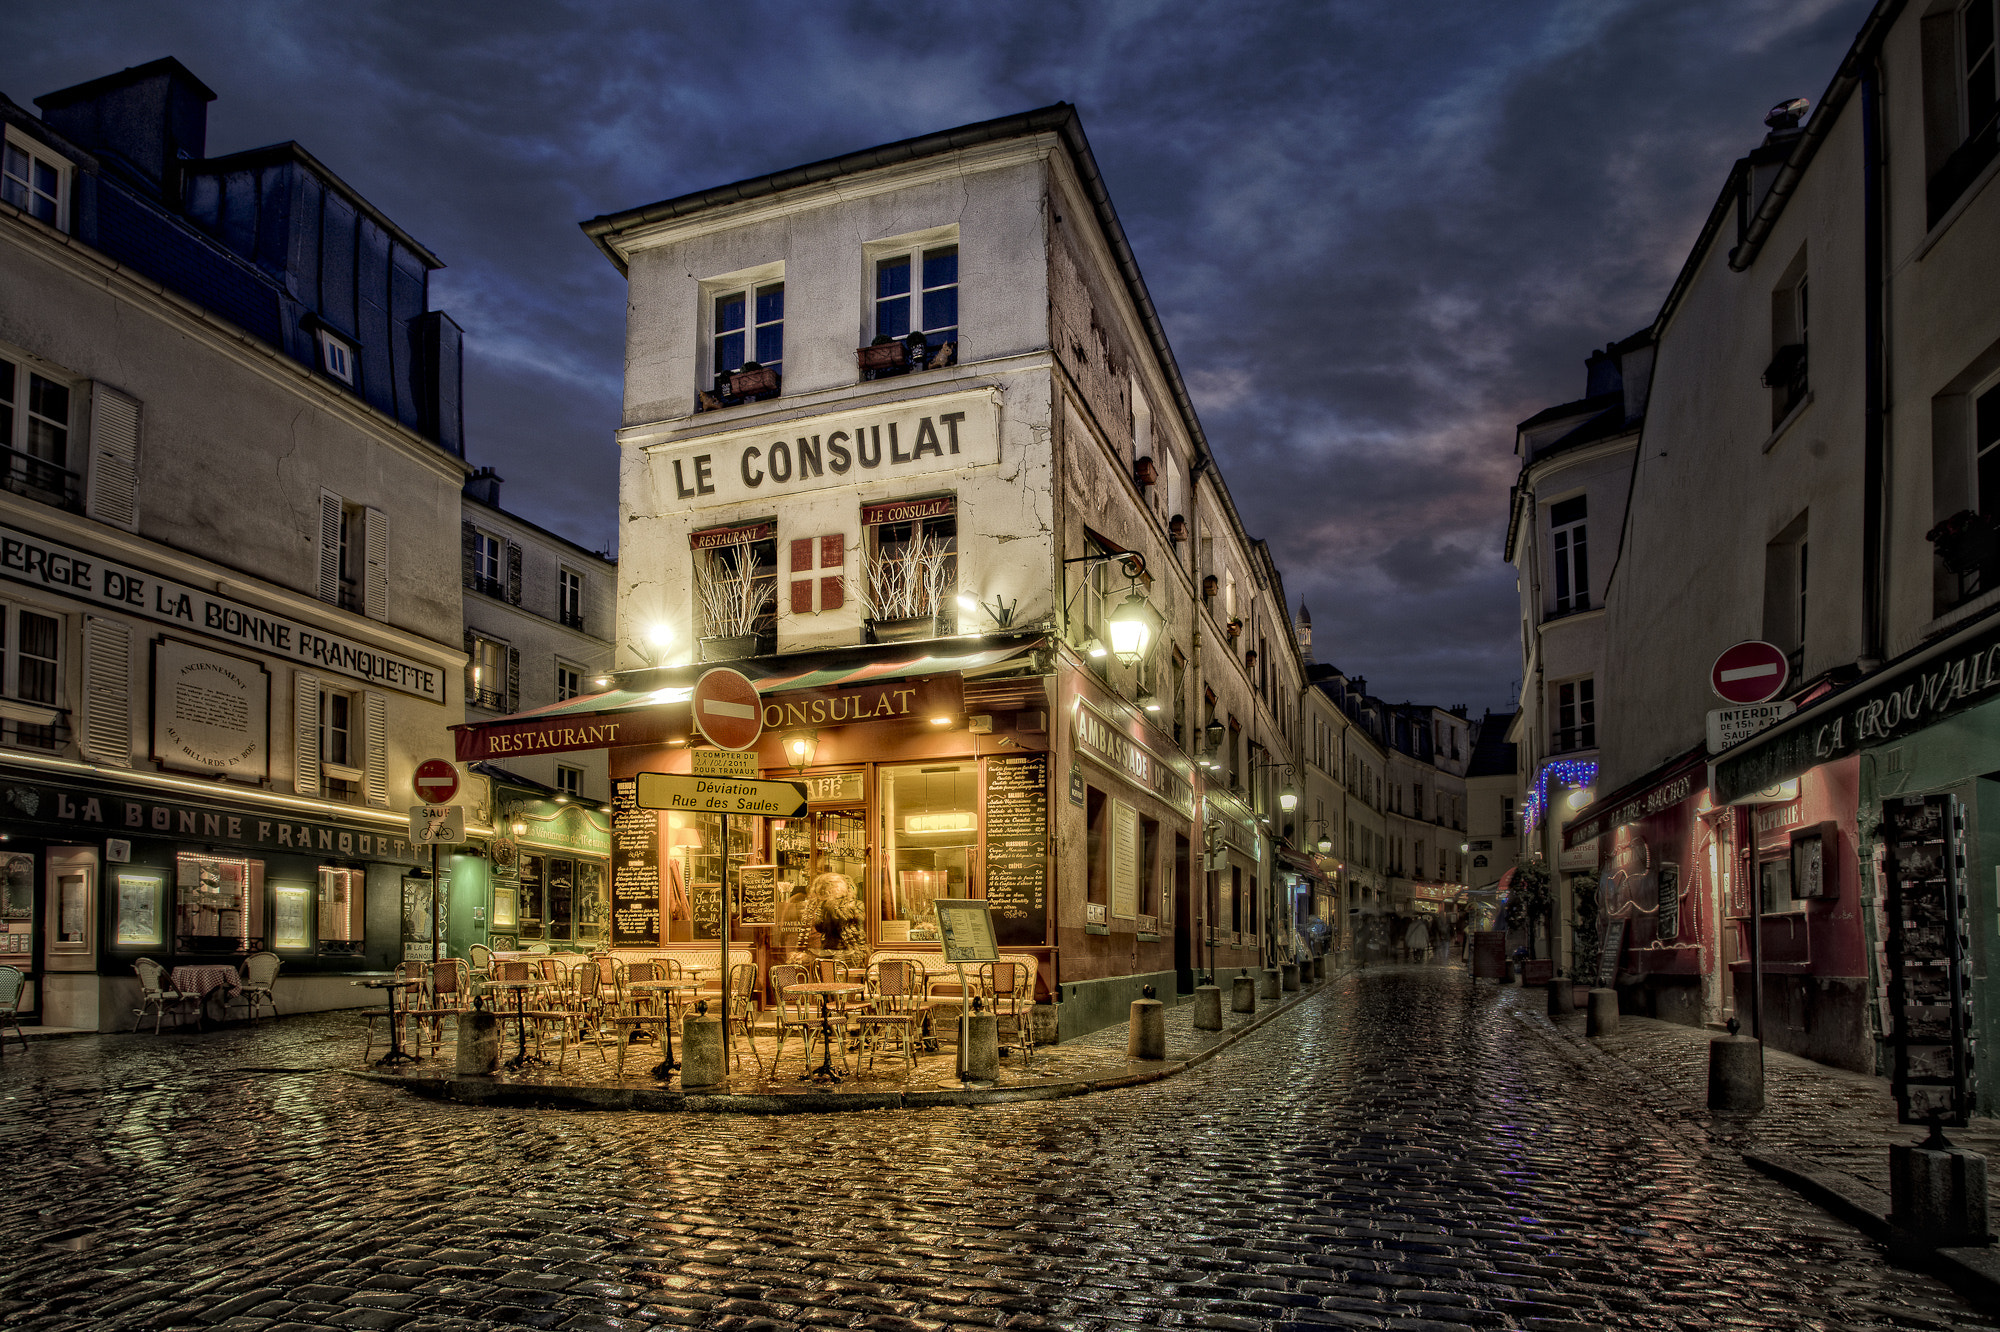 Photograph Montmartre by Matt Kloskowski on 500px